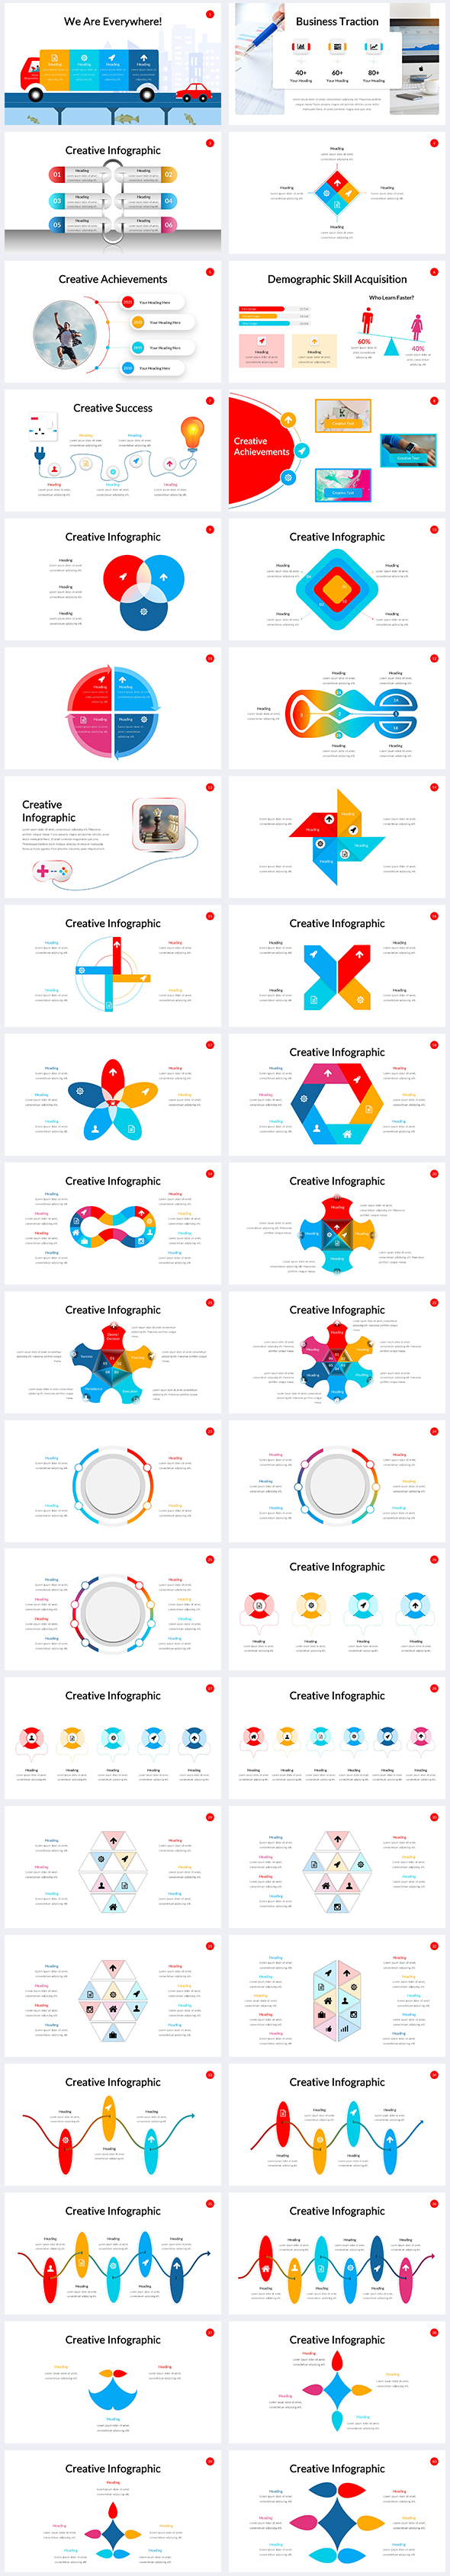 Creative-Infographic-Power-Point-Template